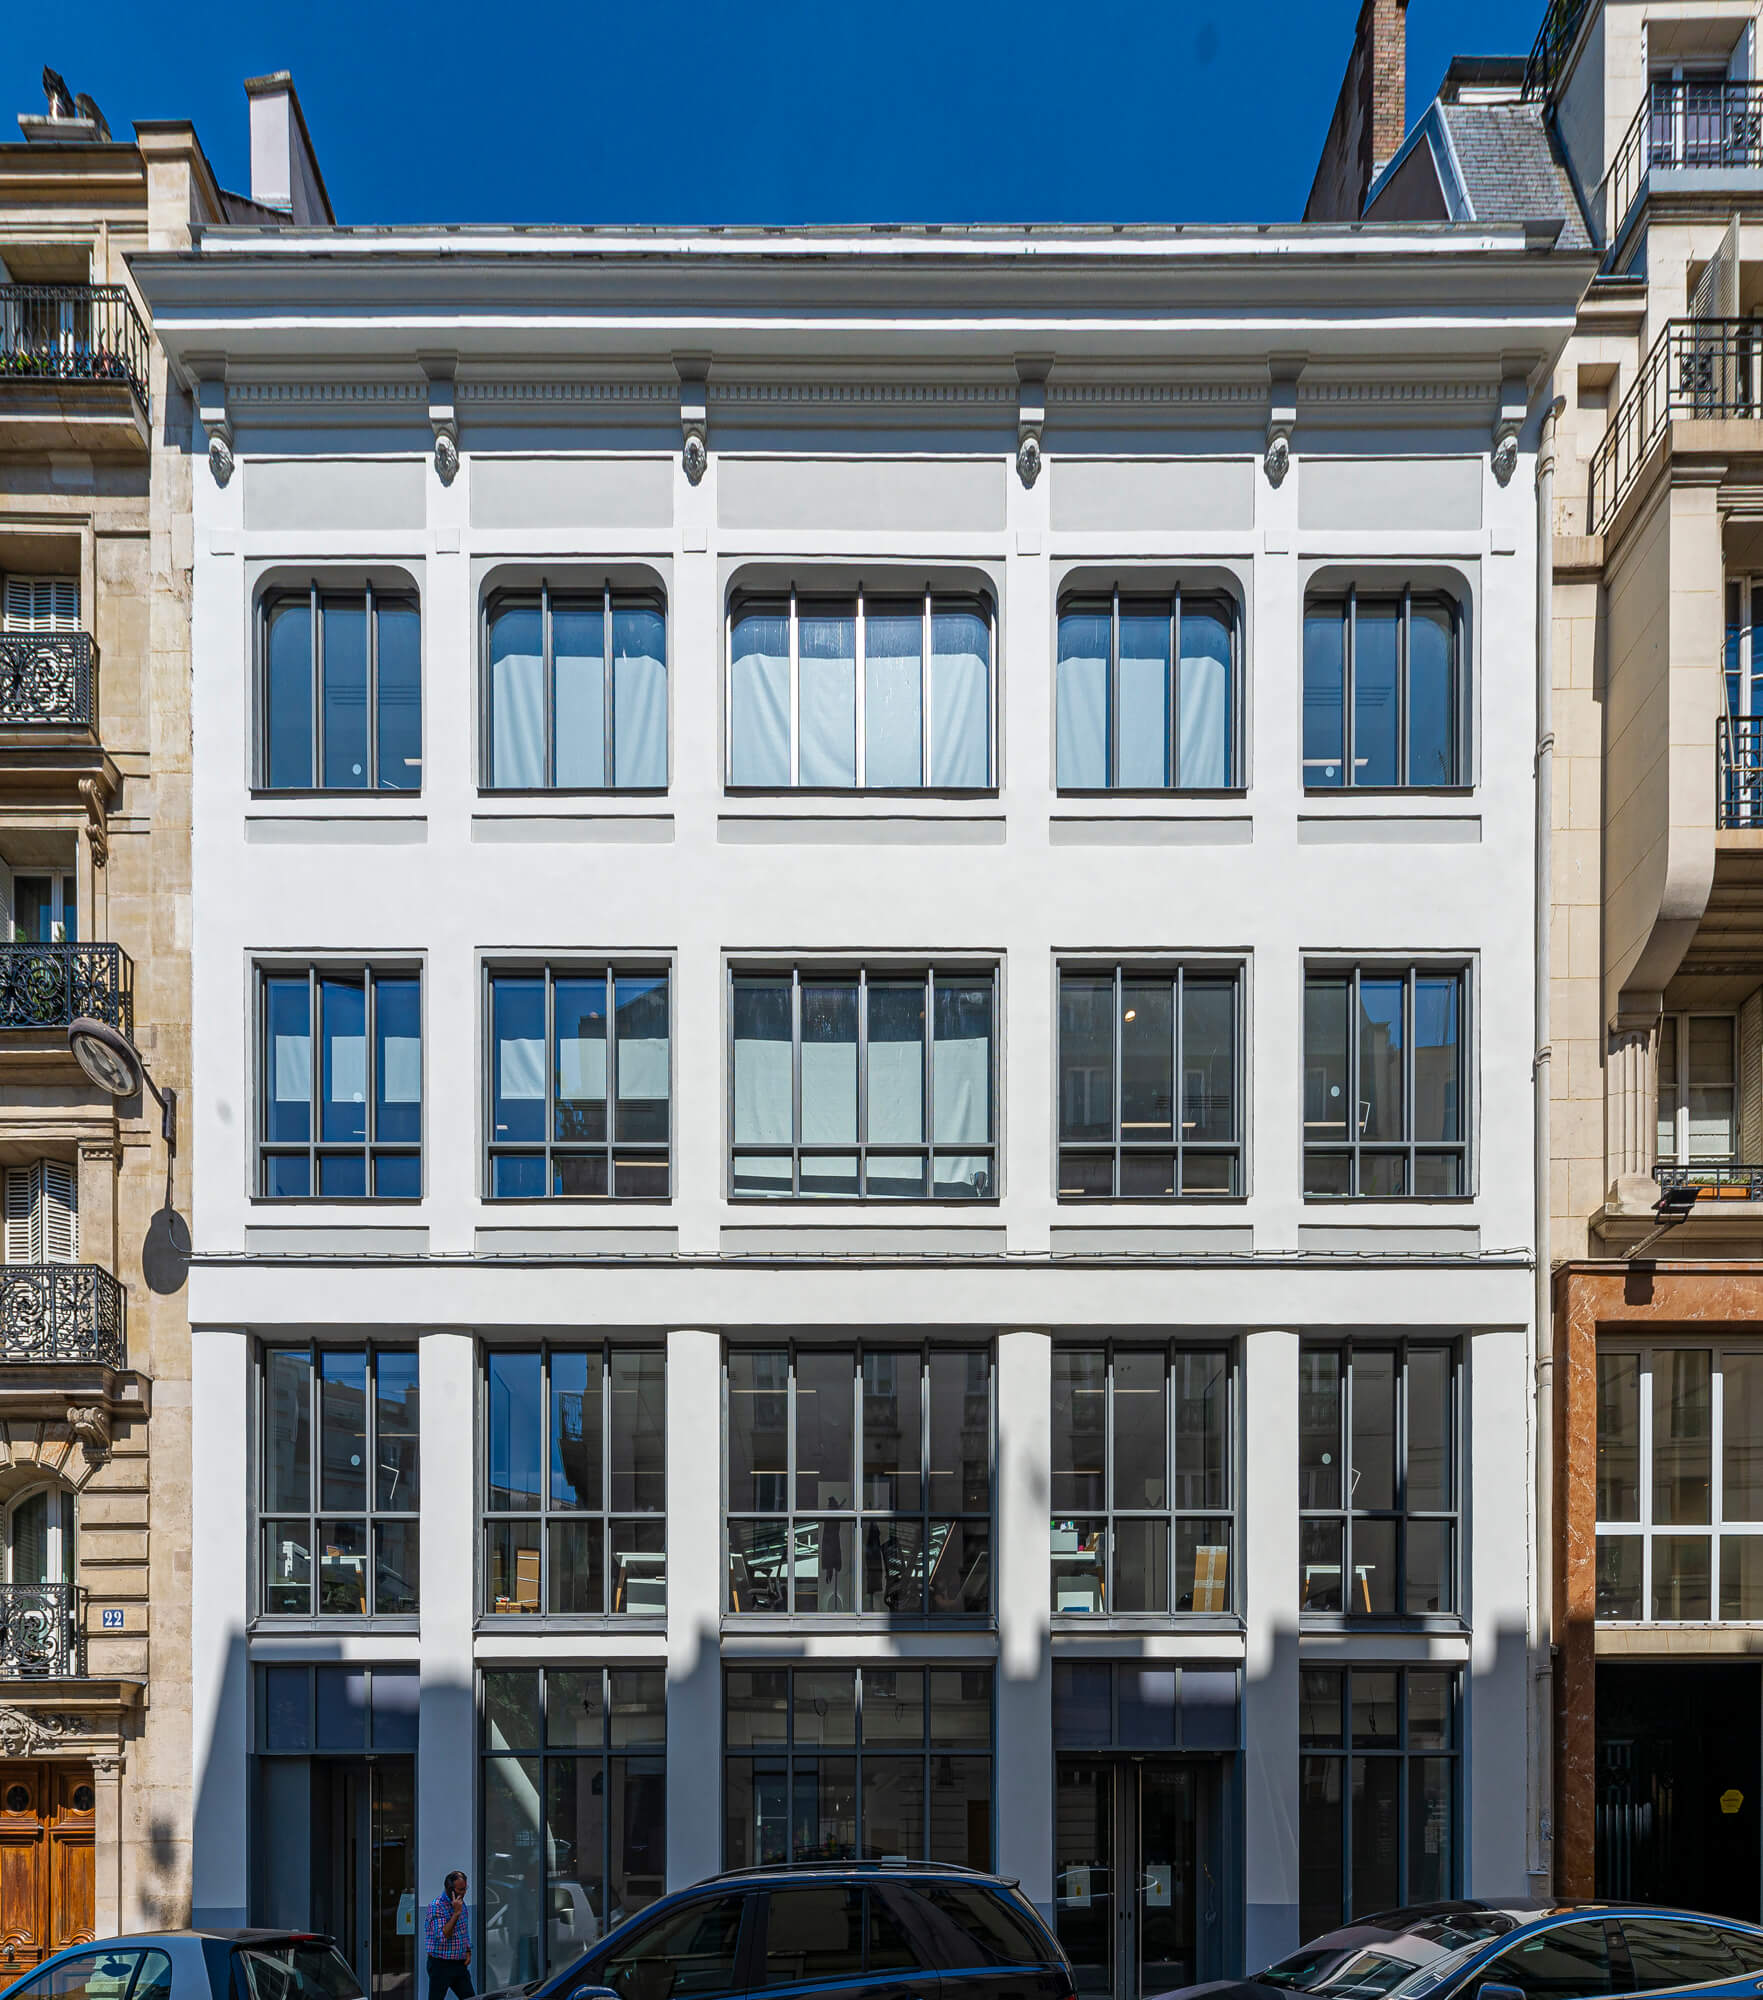 architecture photographie photographe paris A26 troyon Come bocabeille studio cob architecture paris photo